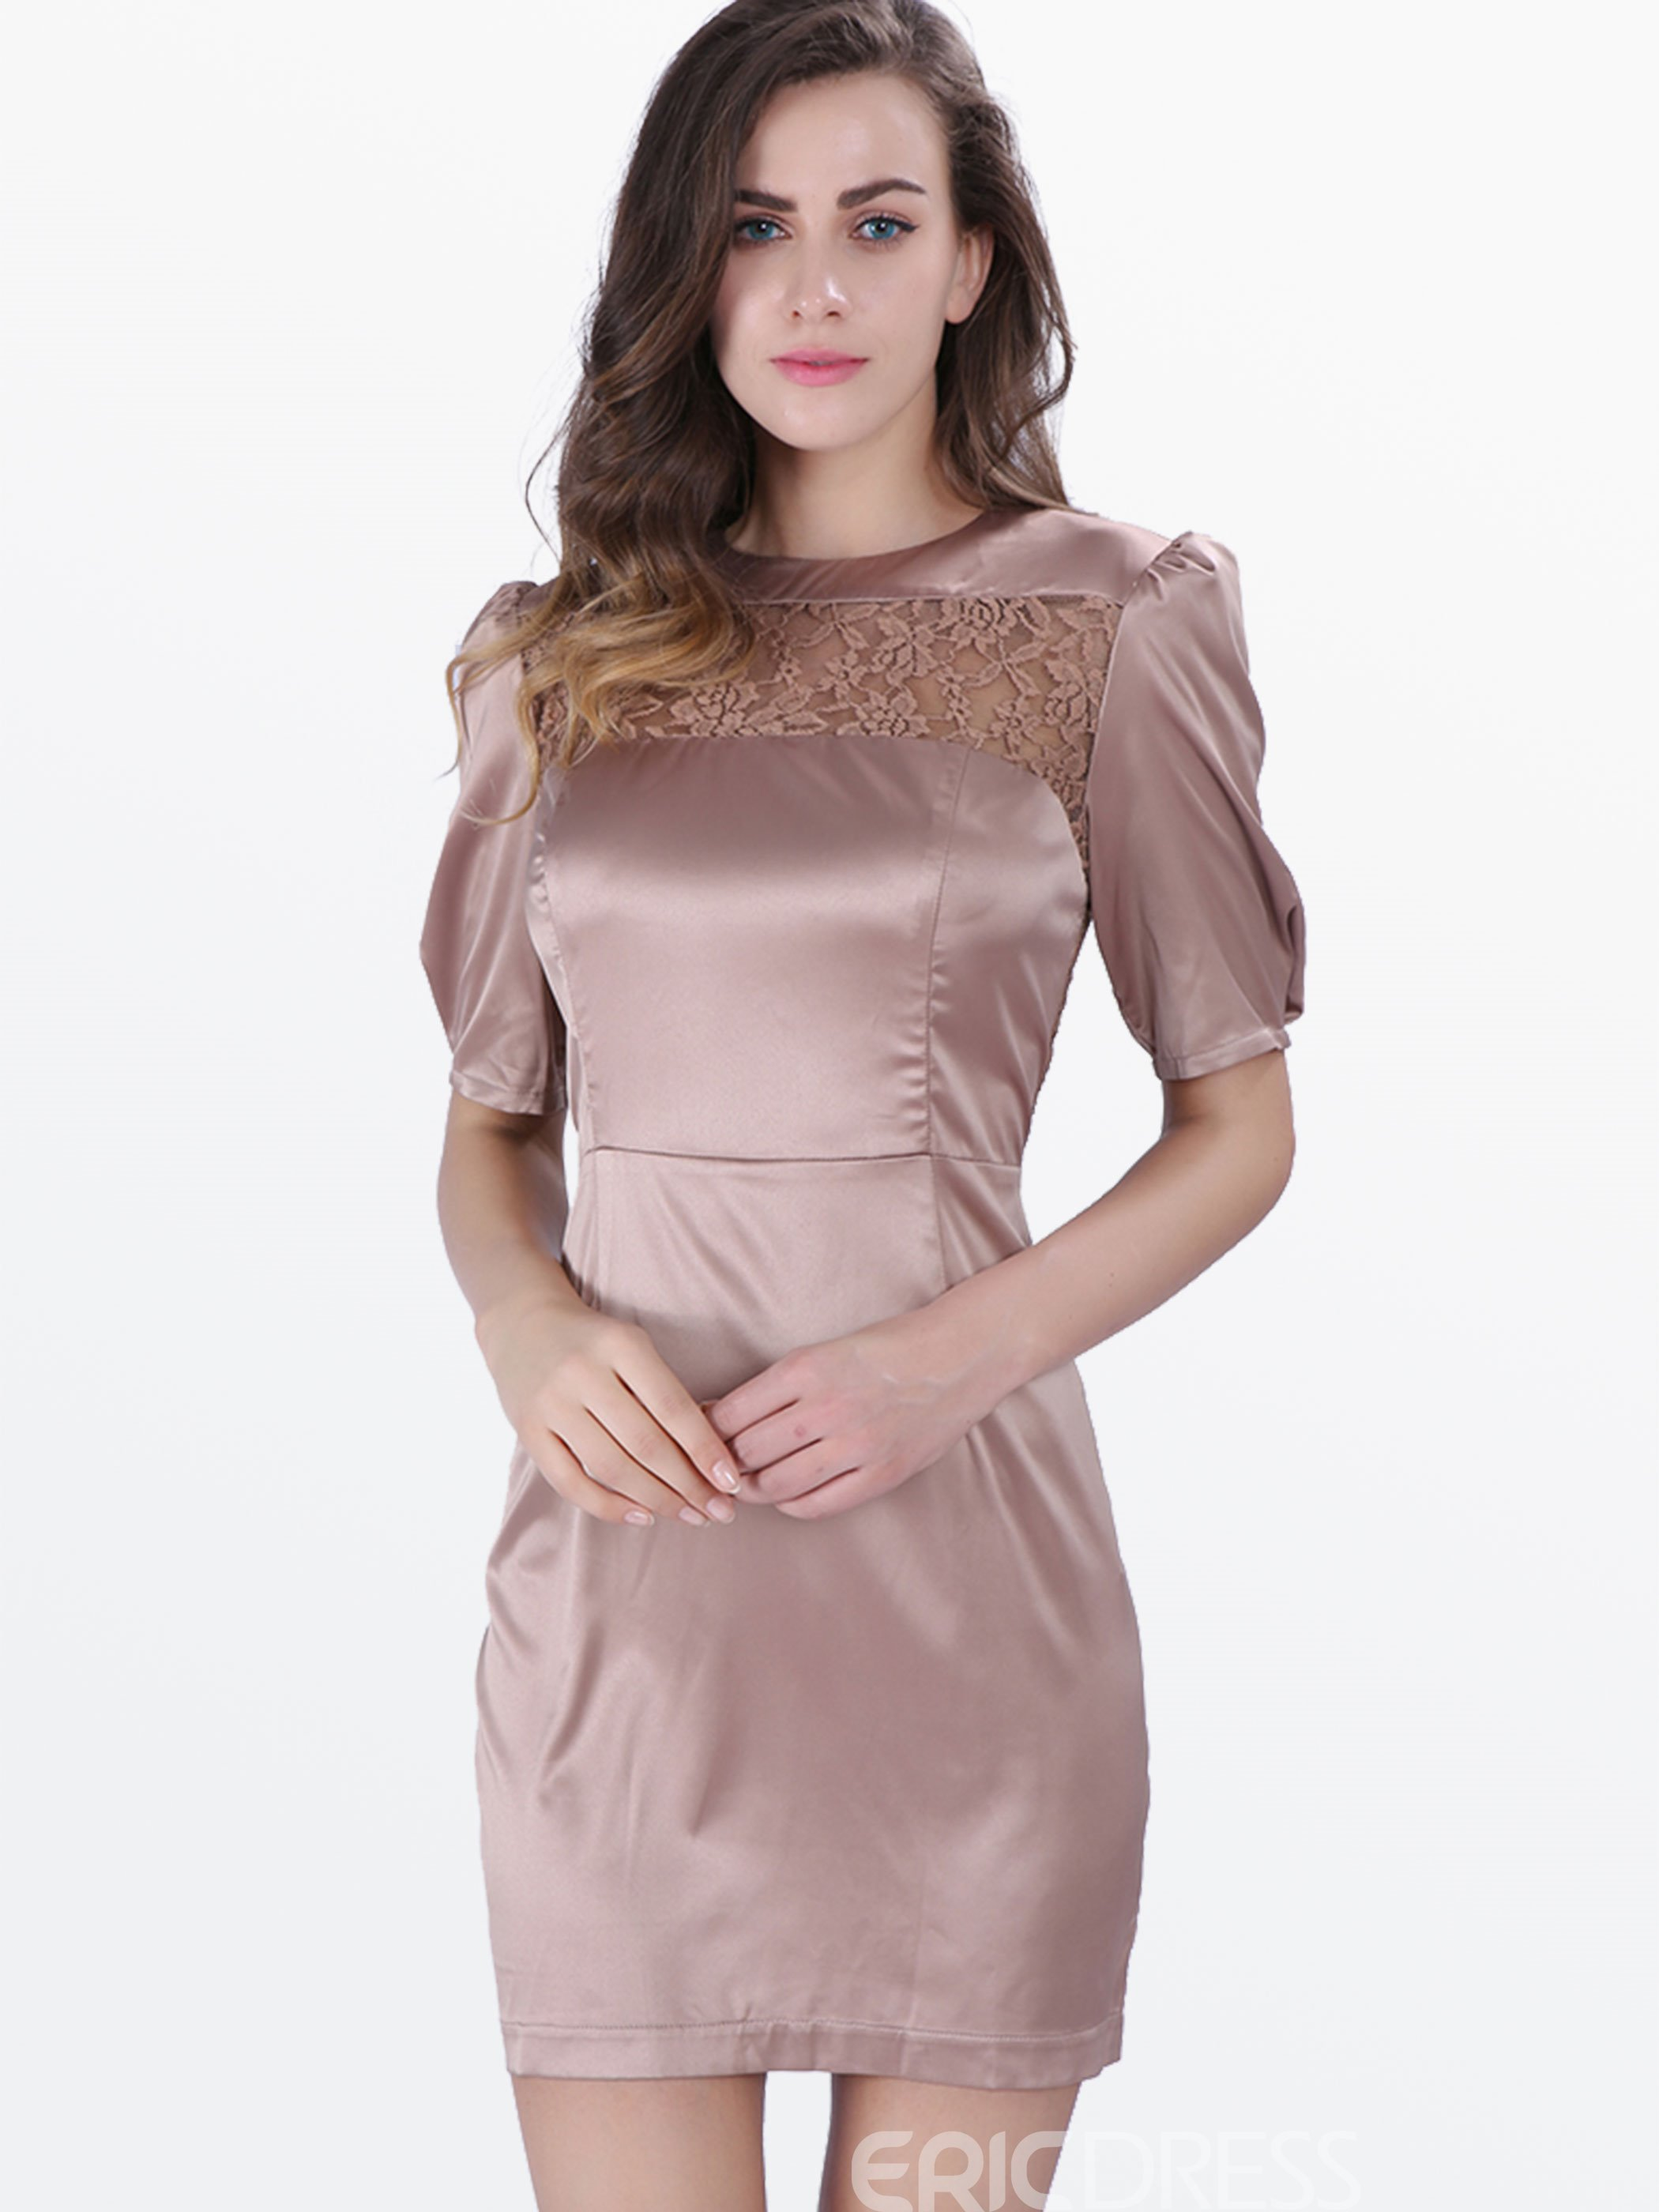 Ericdress coupon code